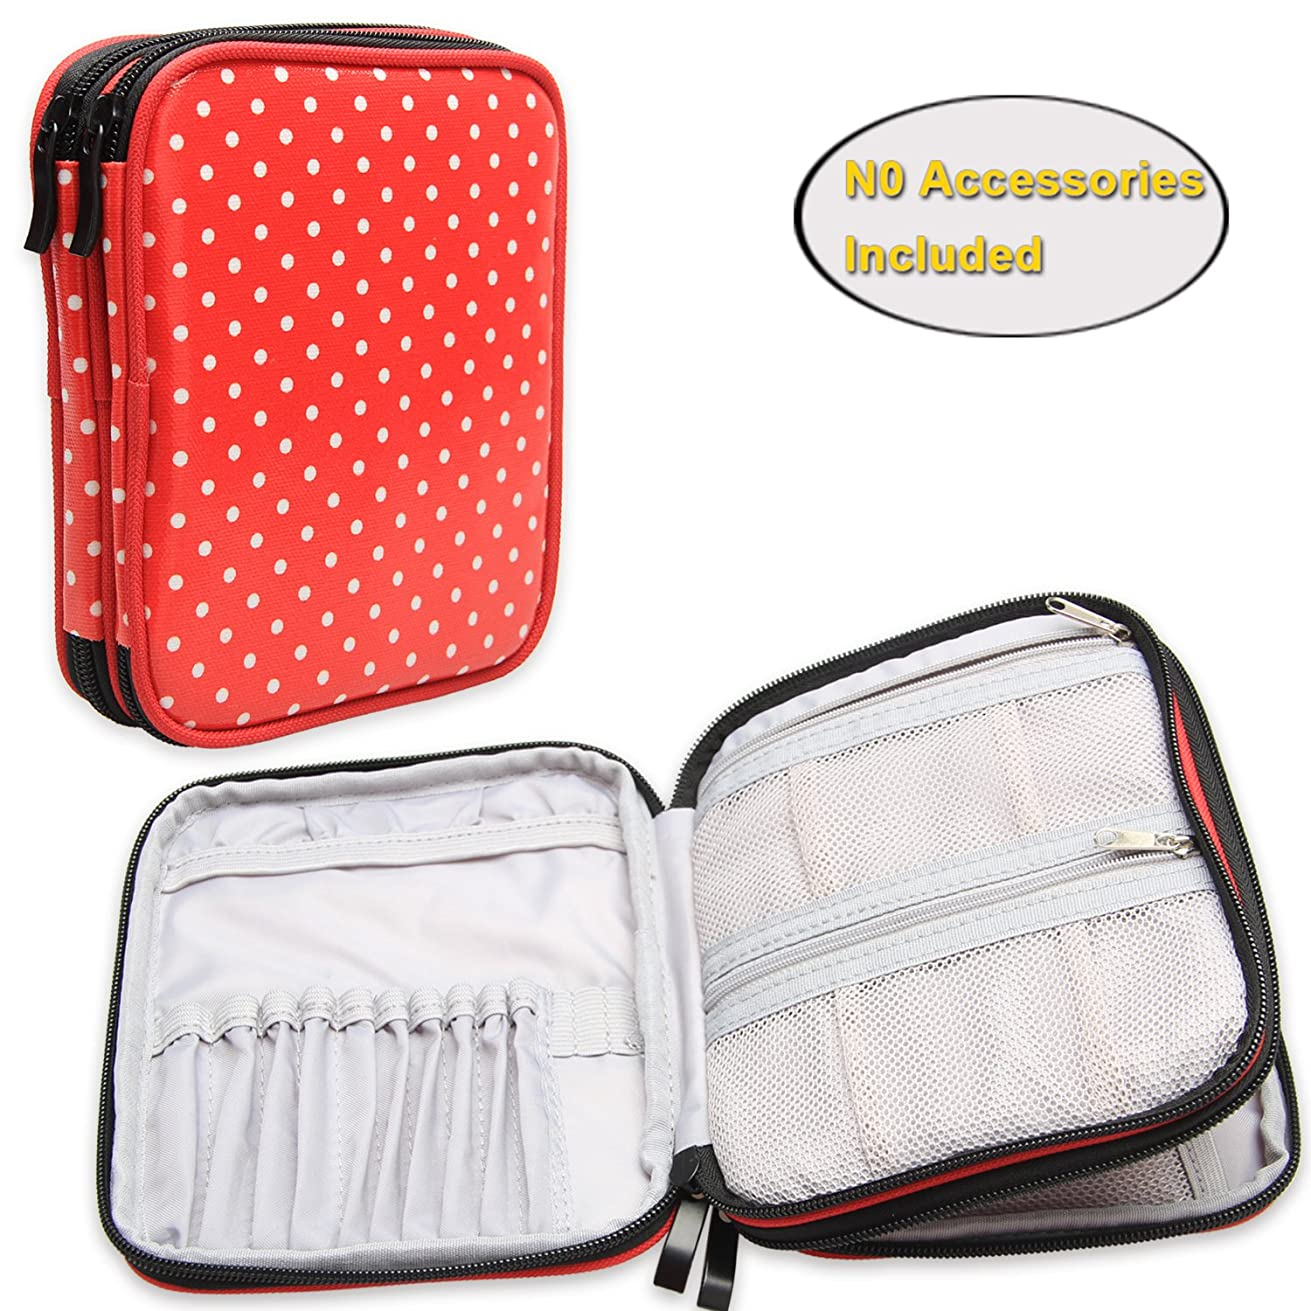 Teamoy Crochet Hook Case, Travel Storage Bag for Various Crochet Needles and Accessories, Lightweight and All in One Place, Easy to Carry, Red Dots(No Accessories Included)